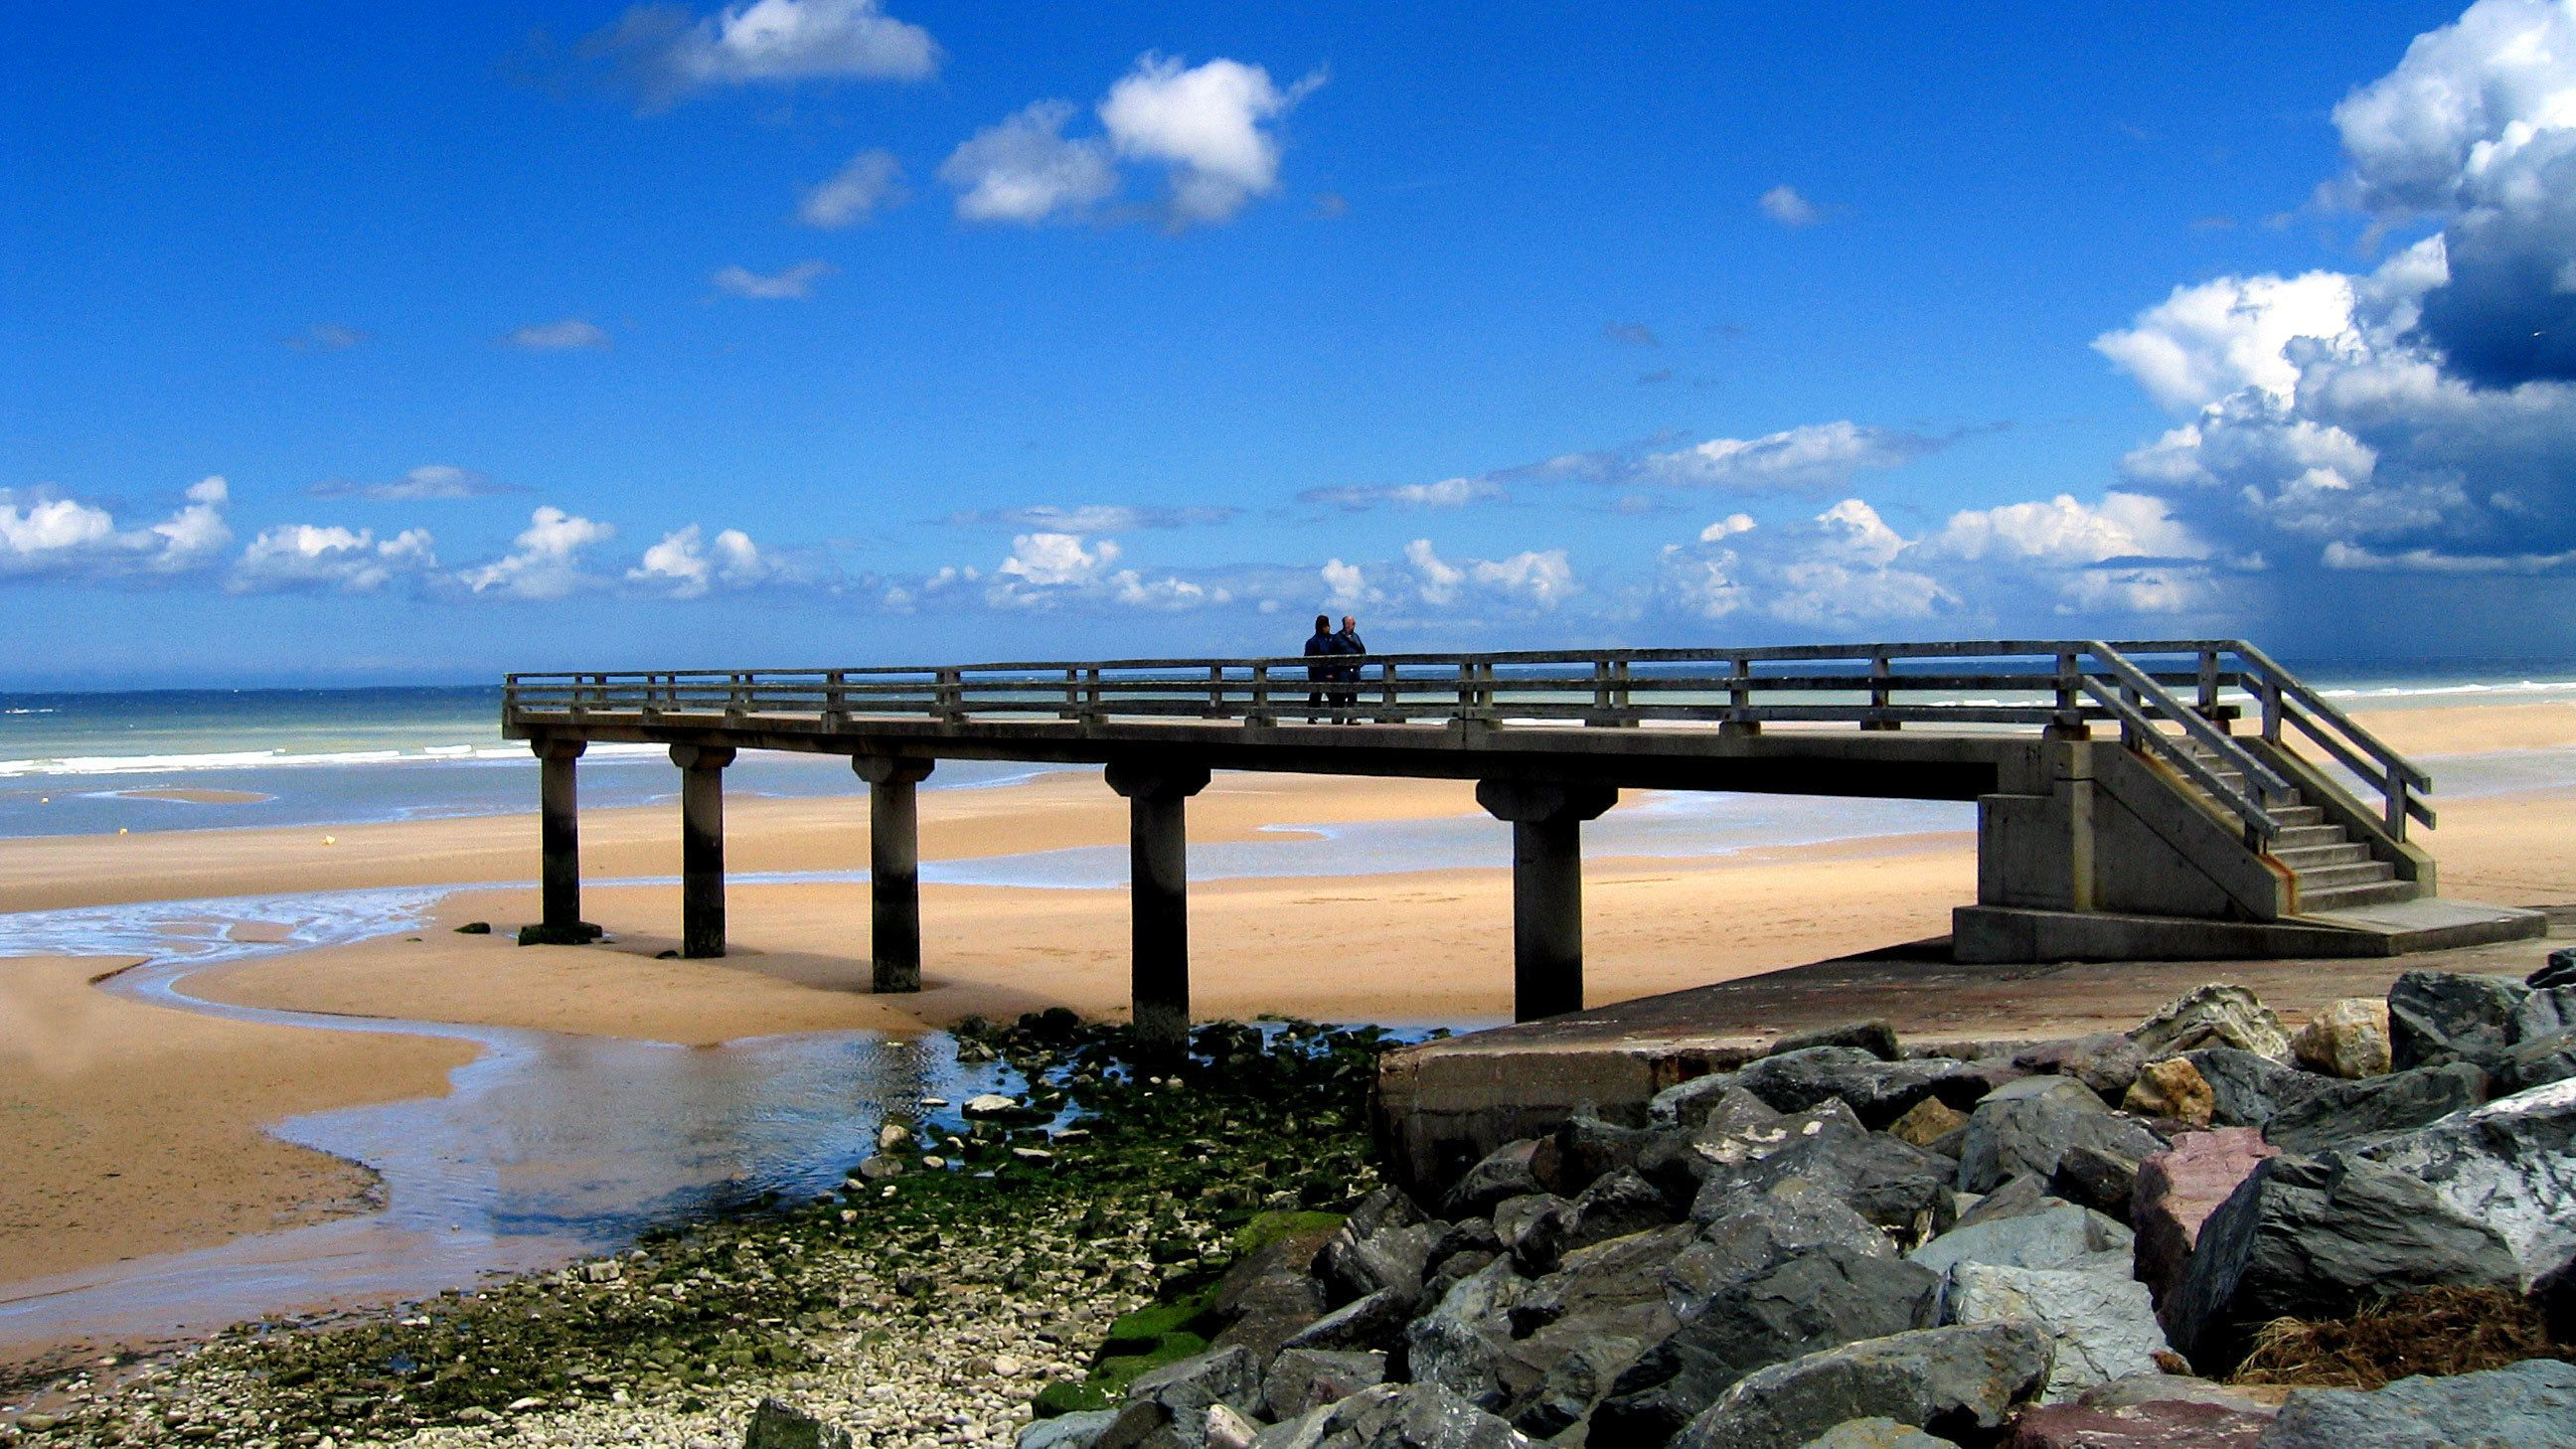 Concrete pier and jetty at Normandy beach.